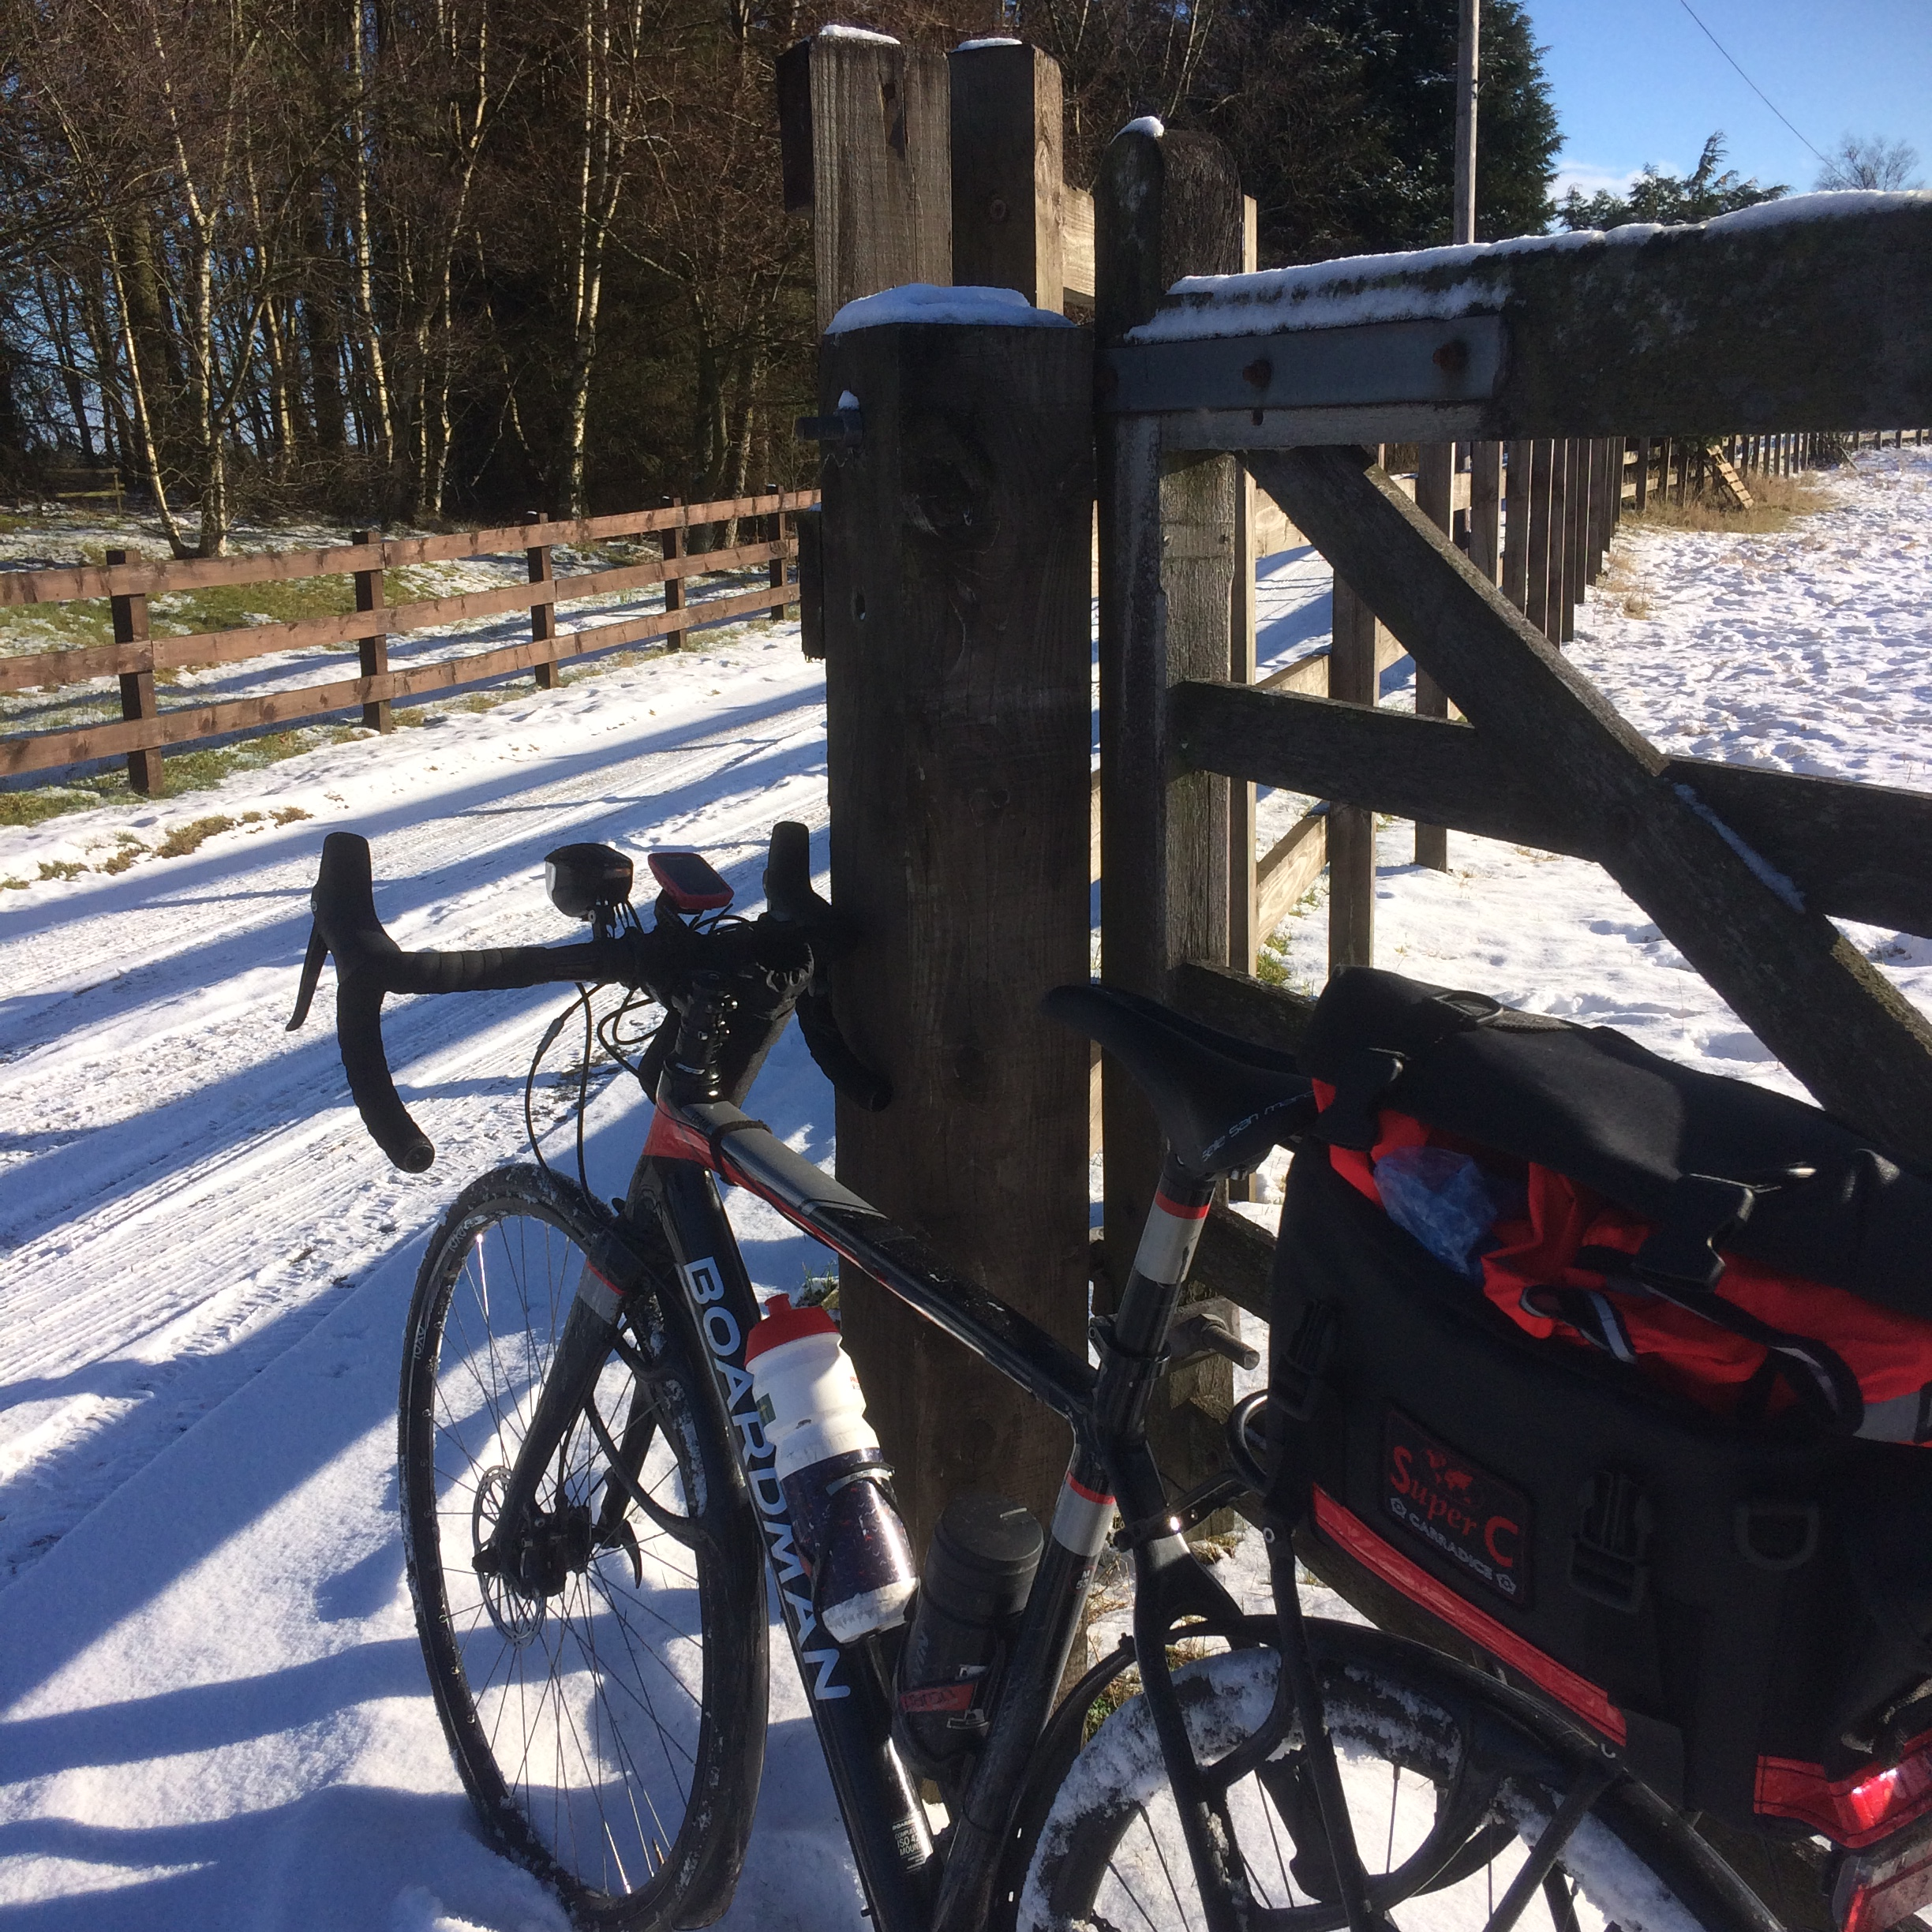 Bike by a snowy track.